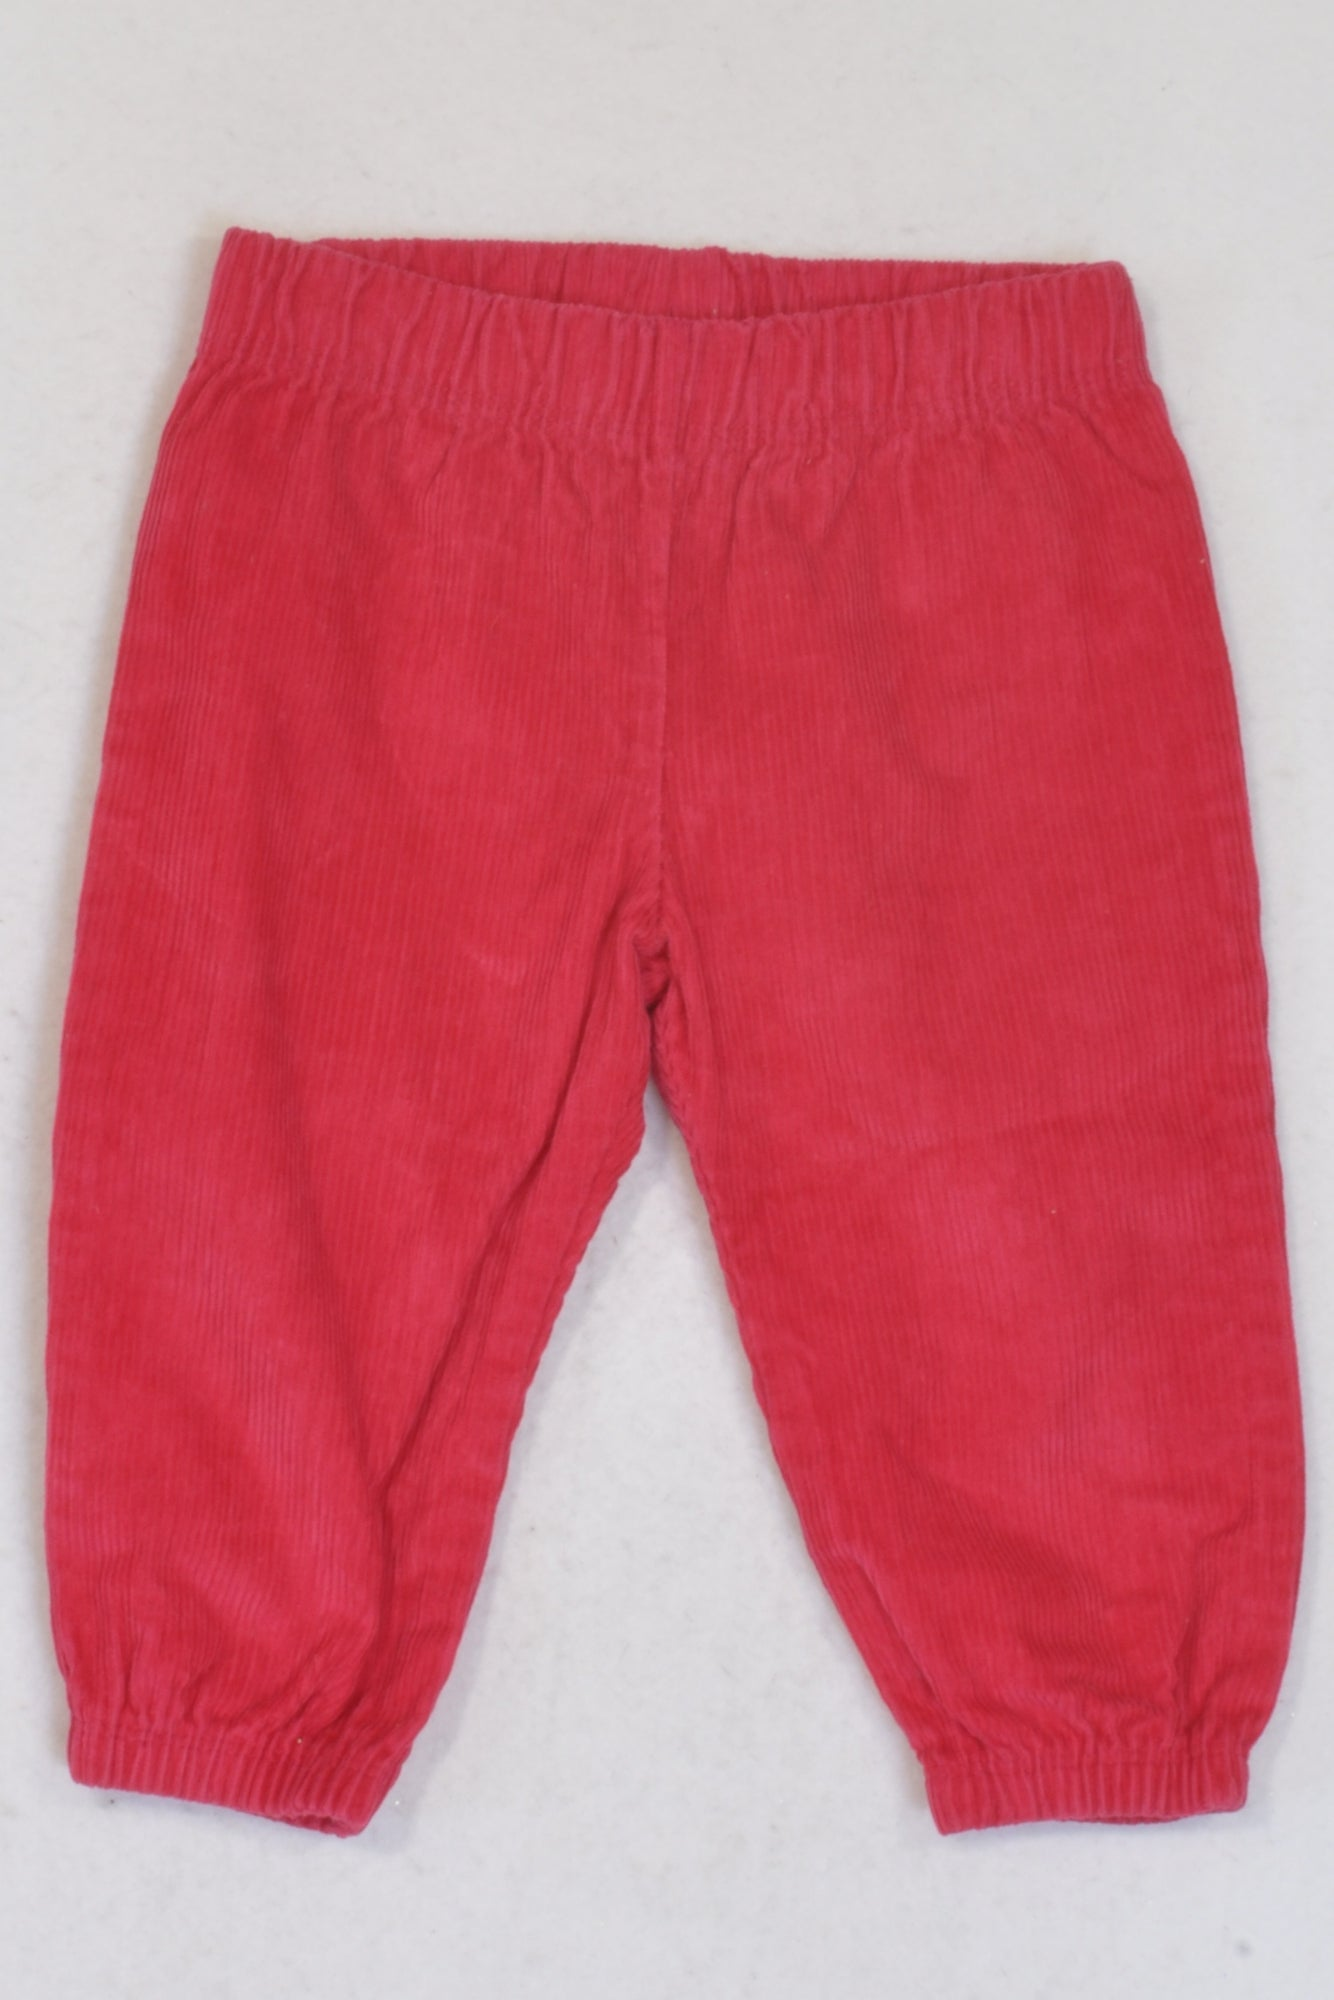 Woolworths Cerise Pink Cuffed Corduroy Pants Girls 6-12 months